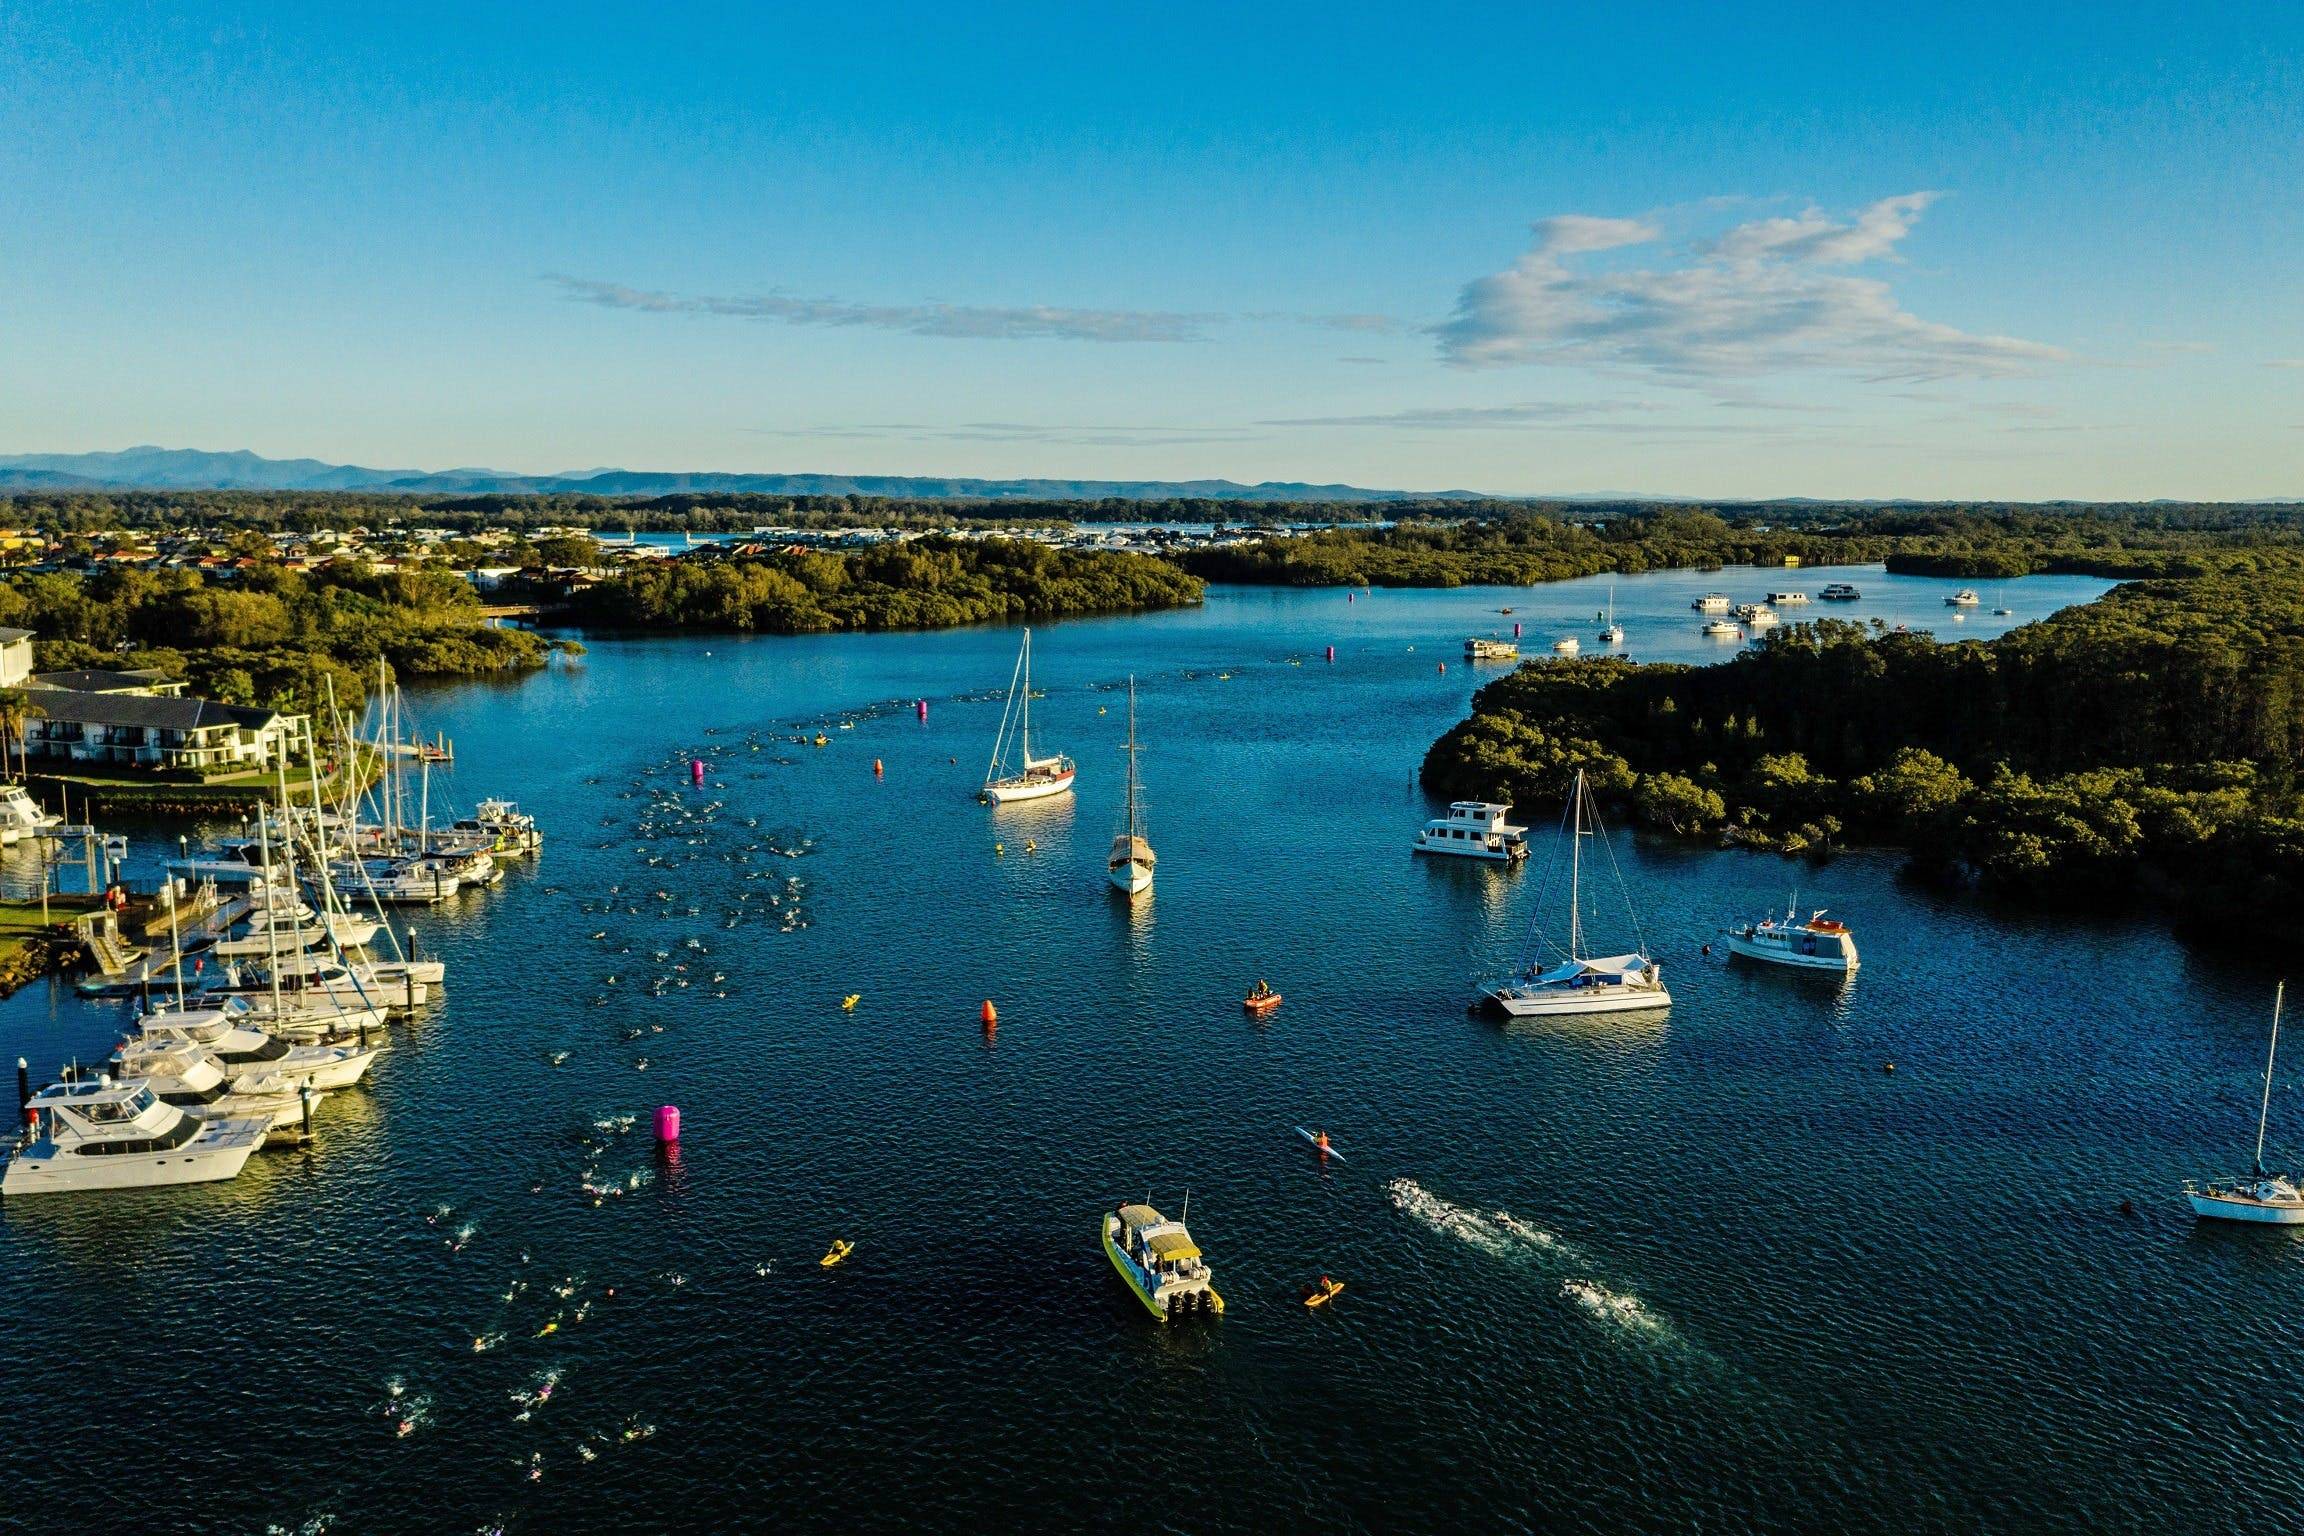 IRONMAN 70.3 Port Macquarie - Tourism Canberra